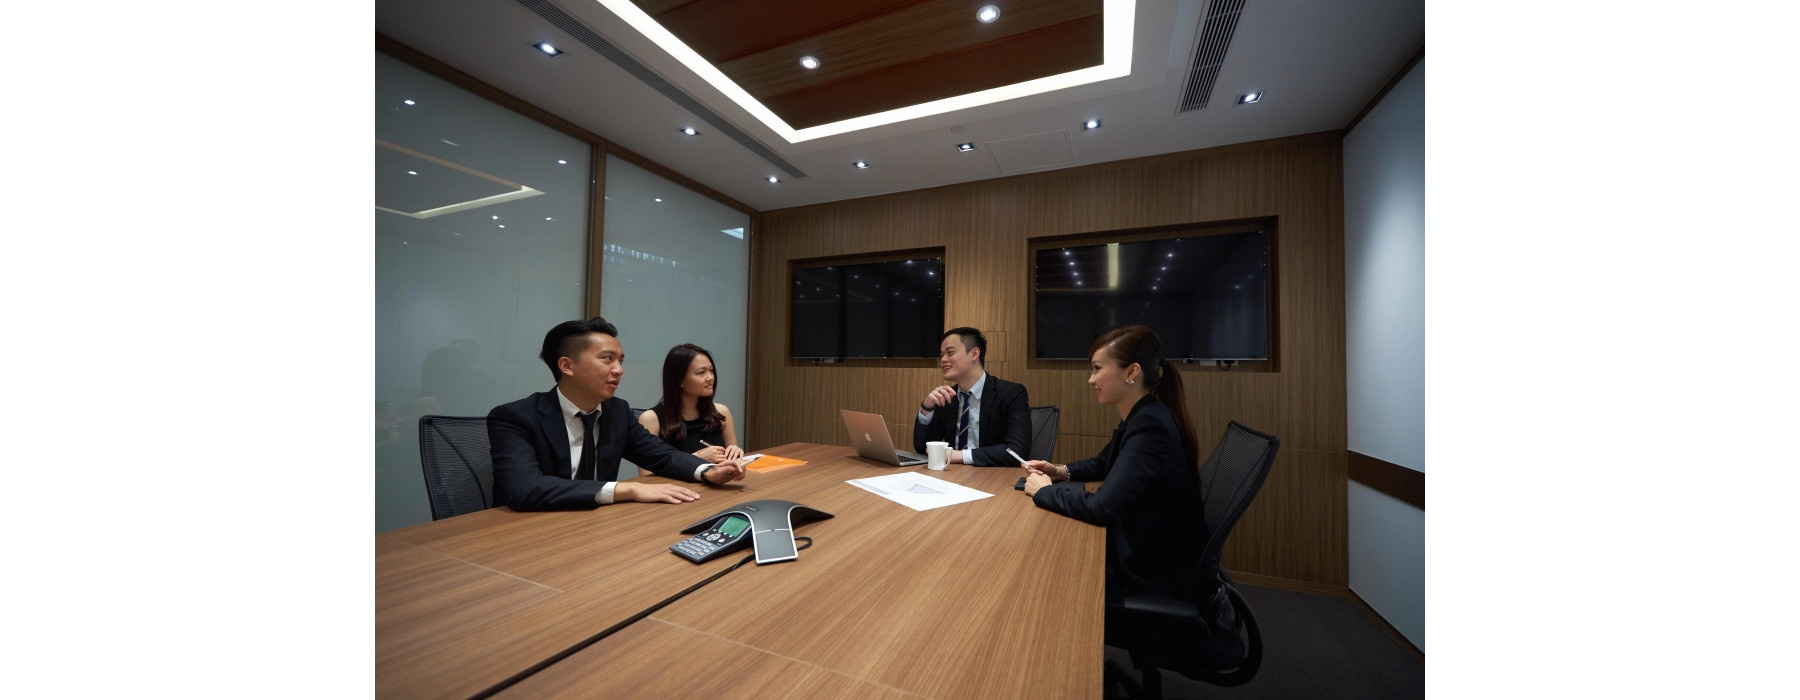 Hong Kong - Admiralty Tower - Video conferencing